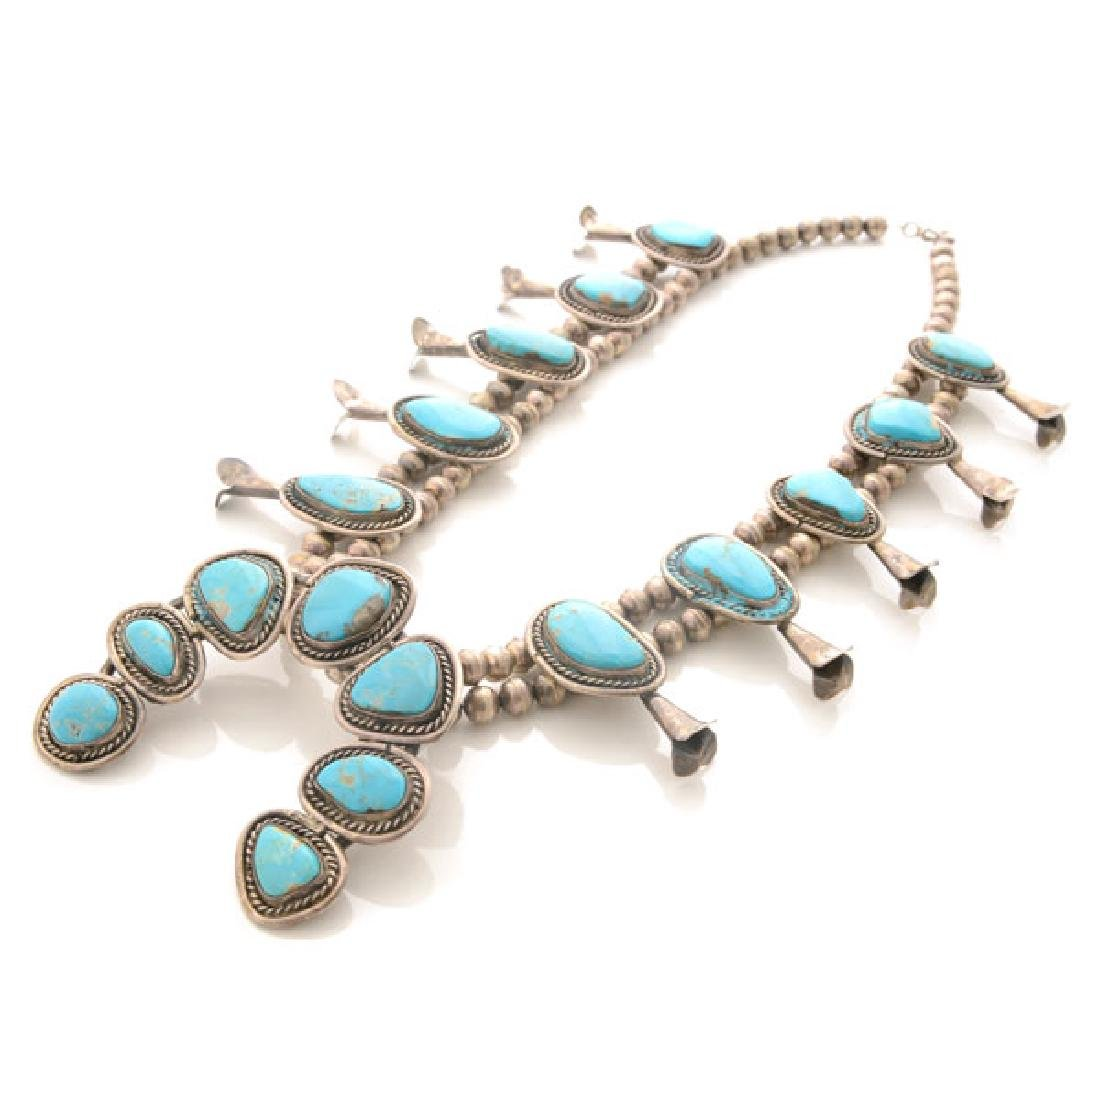 Native American Old Pawn Turquoise, Silver Squash